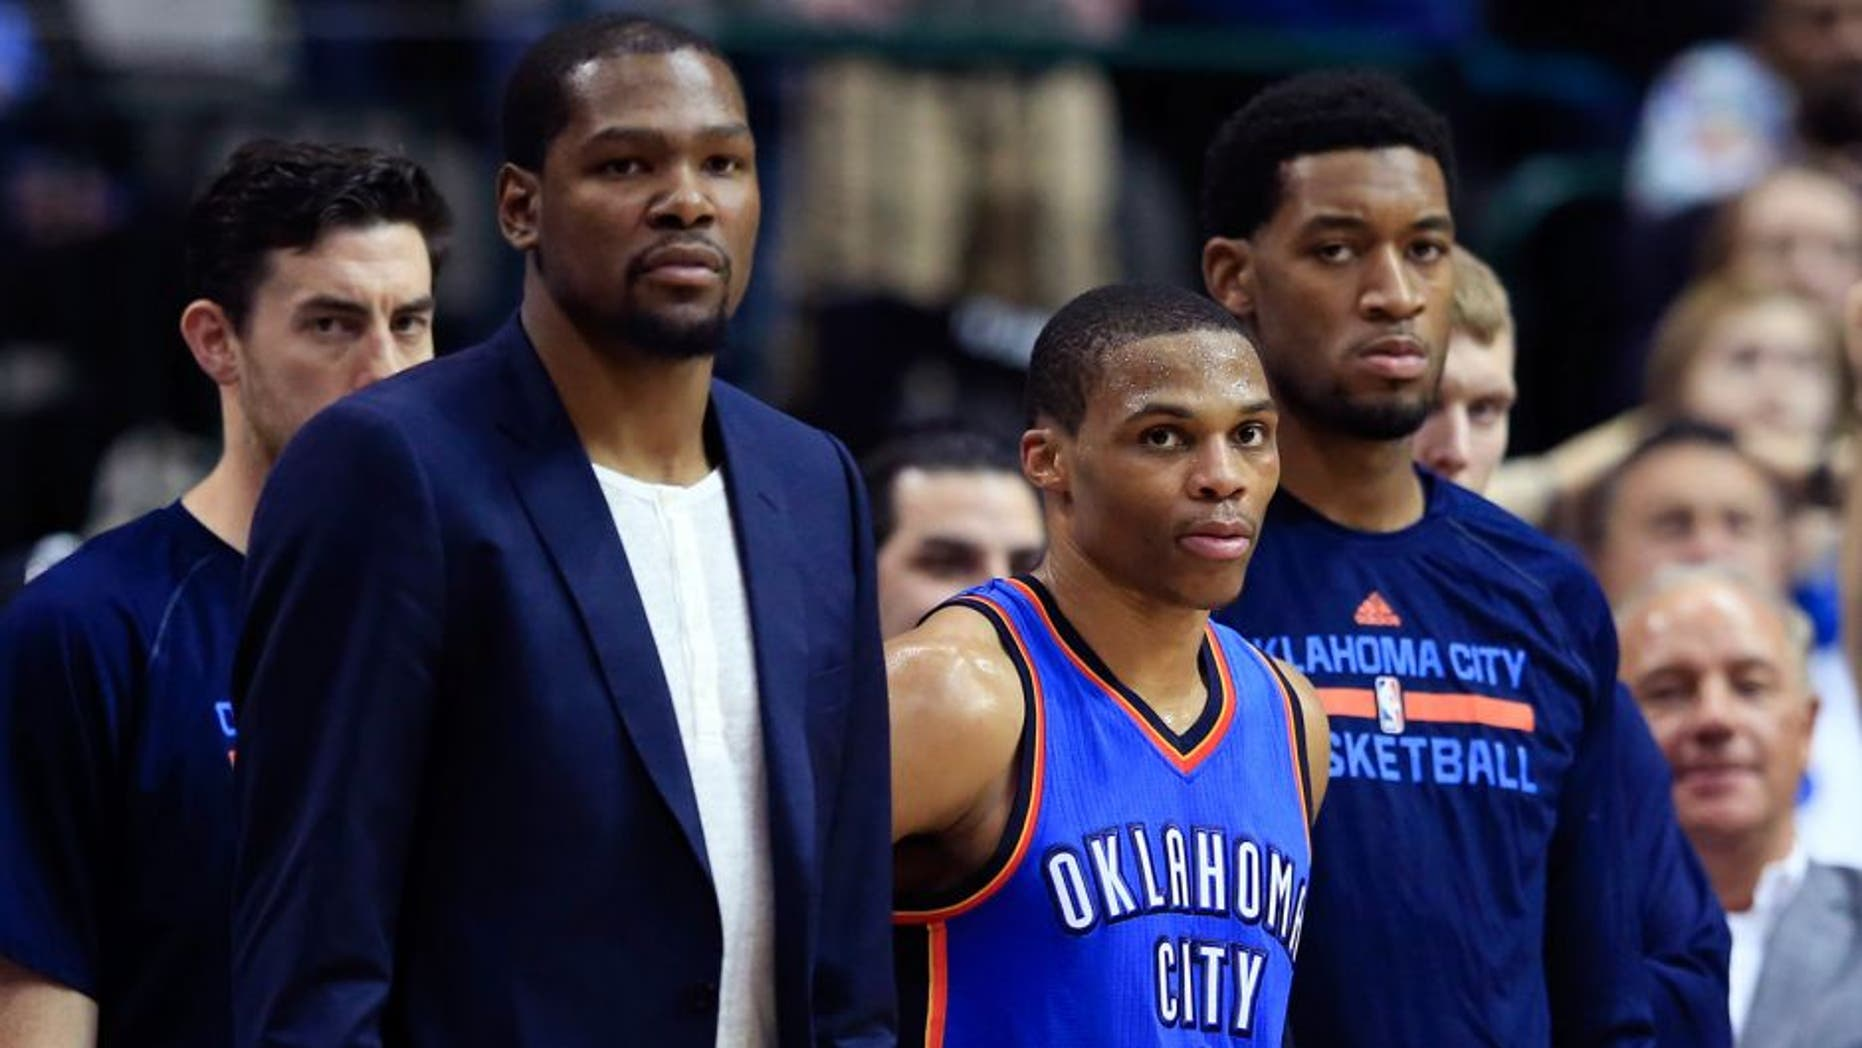 Mar 16, 2015; Dallas, TX, USA; Oklahoma City Thunder forward Kevin Durant (left) and guard Russell Westbrook (0) and forward Perry Jones (right) react on the bench during the second half against the Dallas Mavericks at American Airlines Center. Mandatory Credit: Kevin Jairaj-USA TODAY Sports